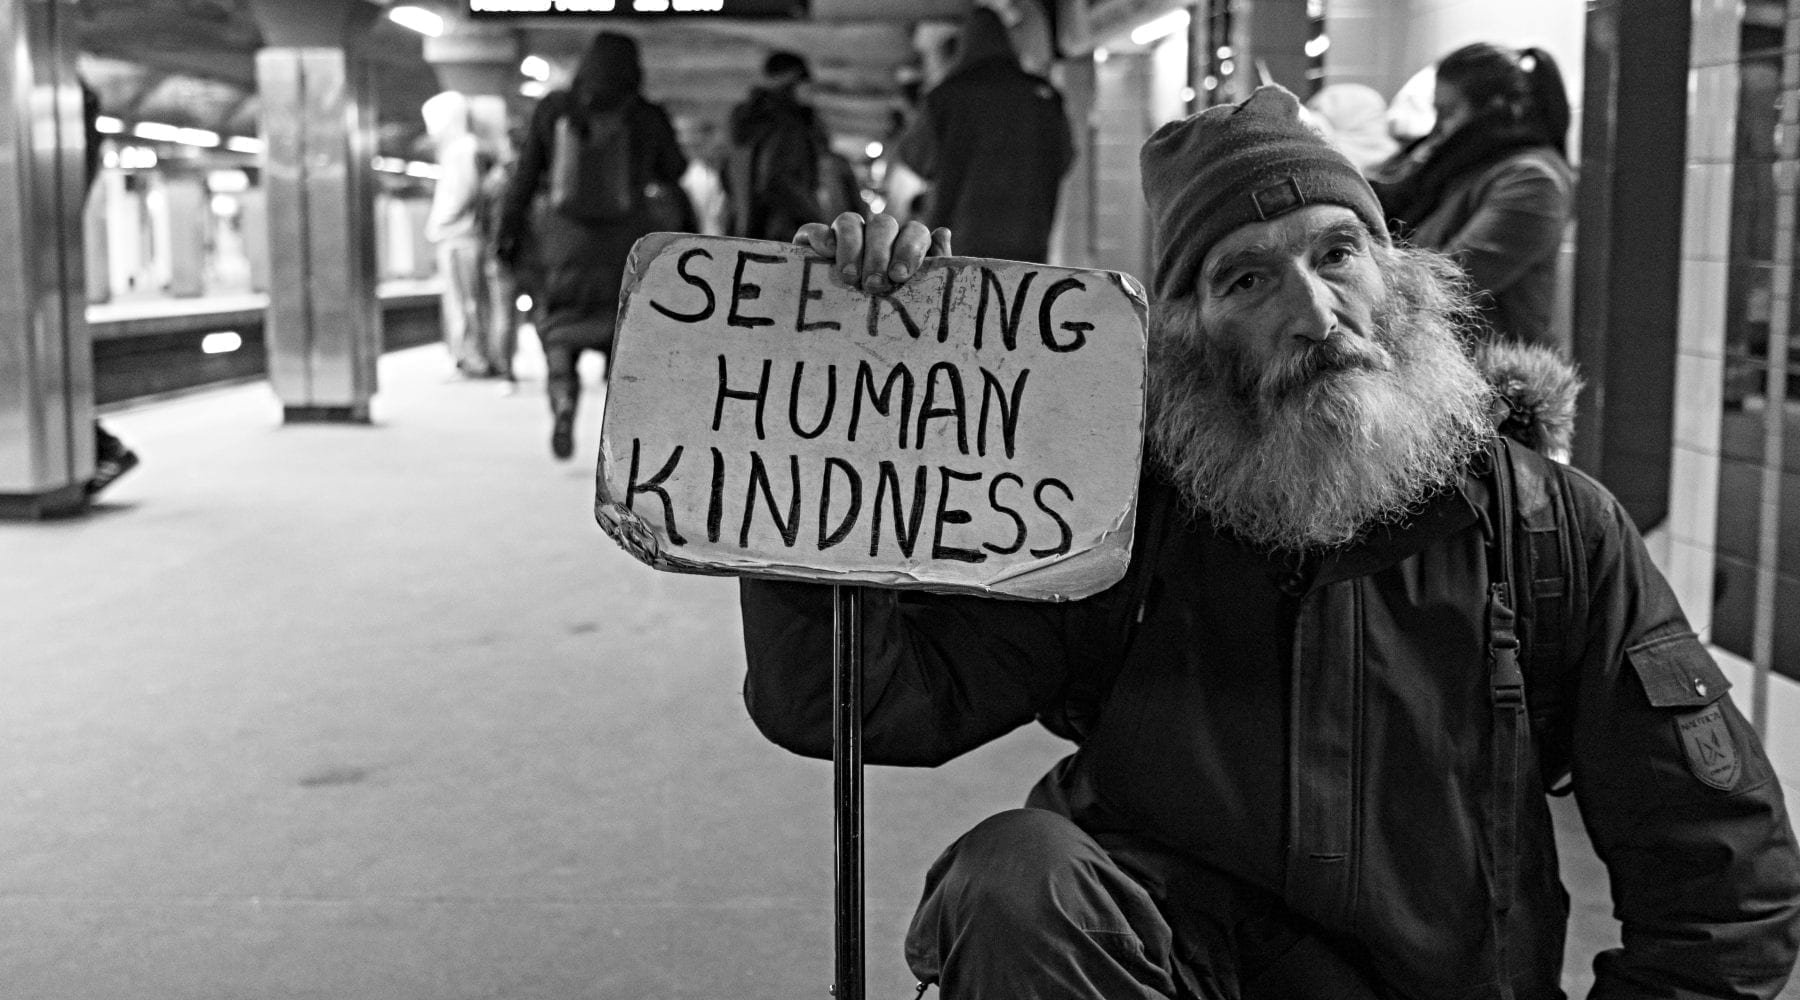 When We Treat Strangers Kindly, We're Deemed Ready for Peace